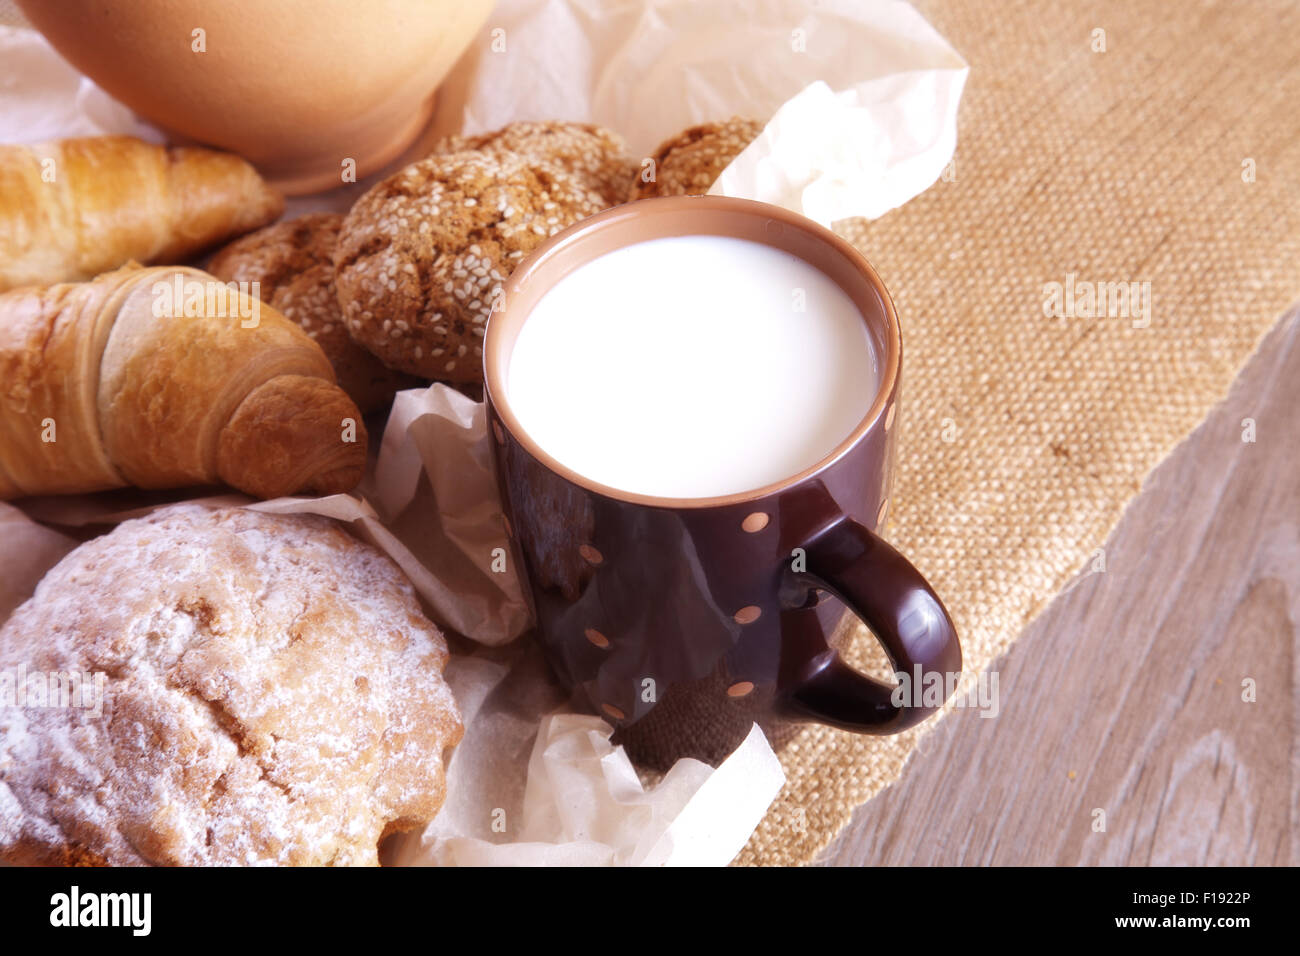 Milk and homemade cakes on a table in rustic style - Stock Image